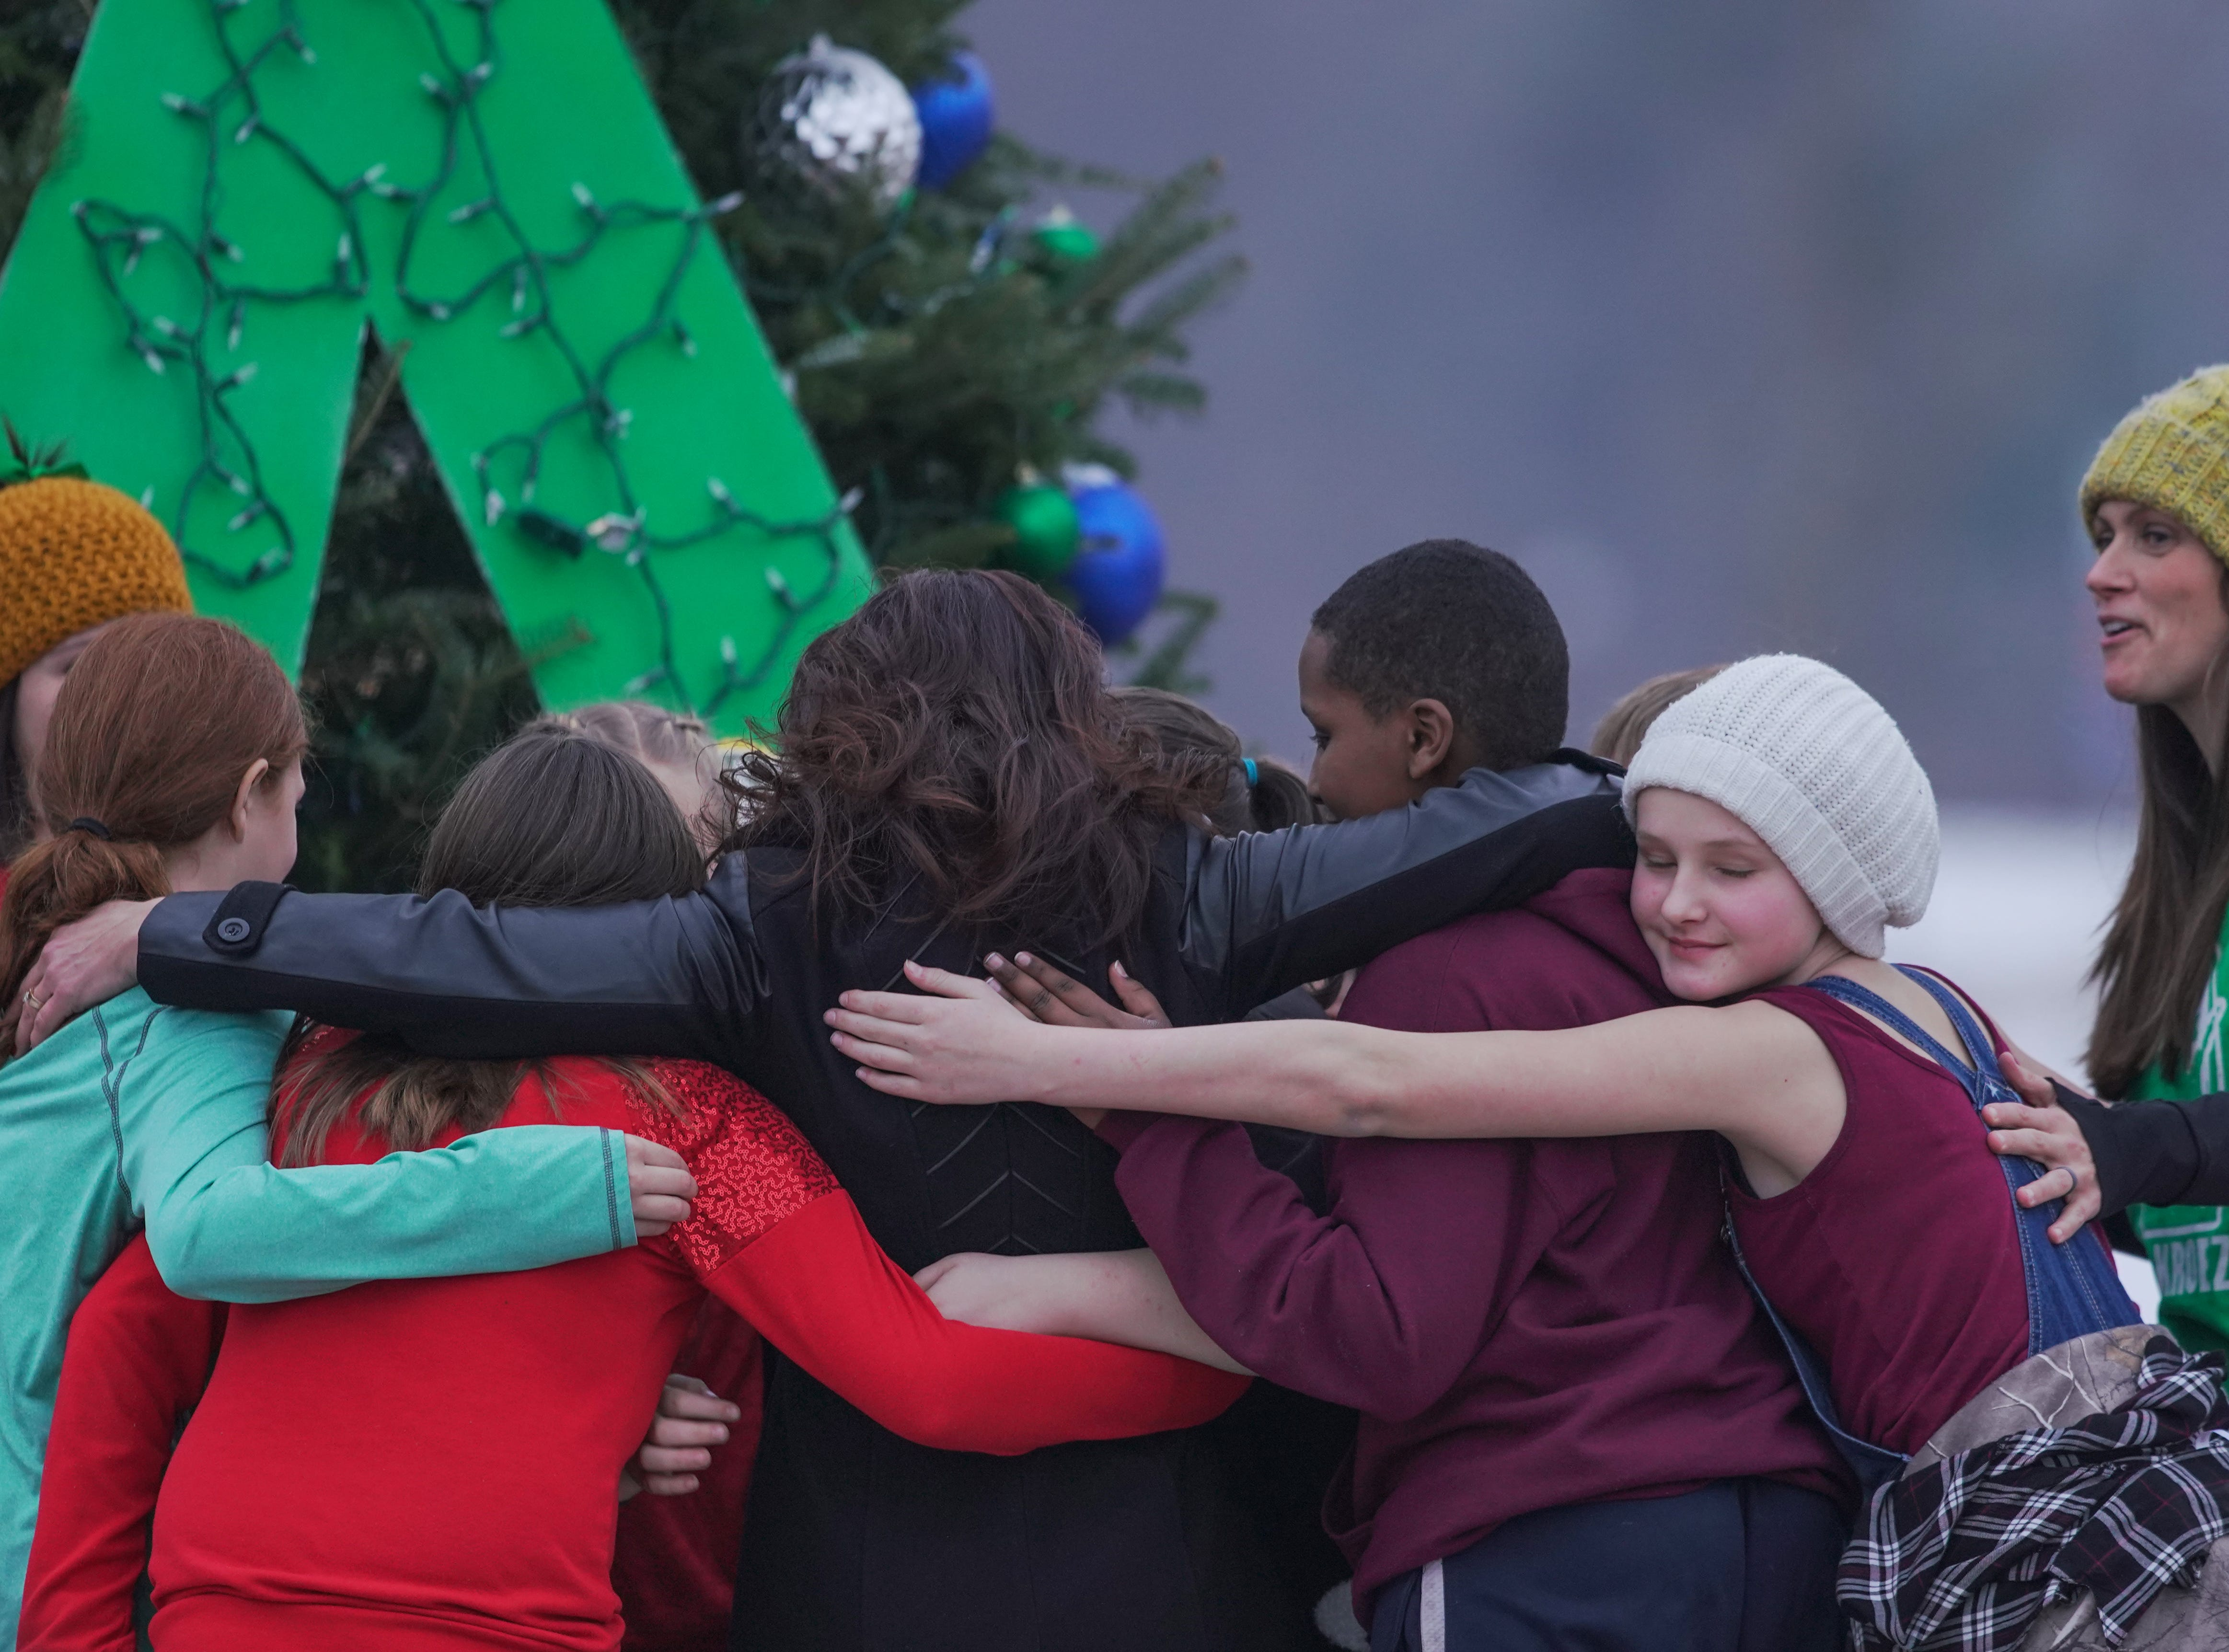 Students embrace with Superintendent Diane Tremblay by the Tree of Hope for Jayme Closs Wednesday, Dec. 12, 2018, outside of Riverview Middle School in Barron, Wisc. T'xer Zhon Kha/USA TODAY NETWORK-Wisconsin